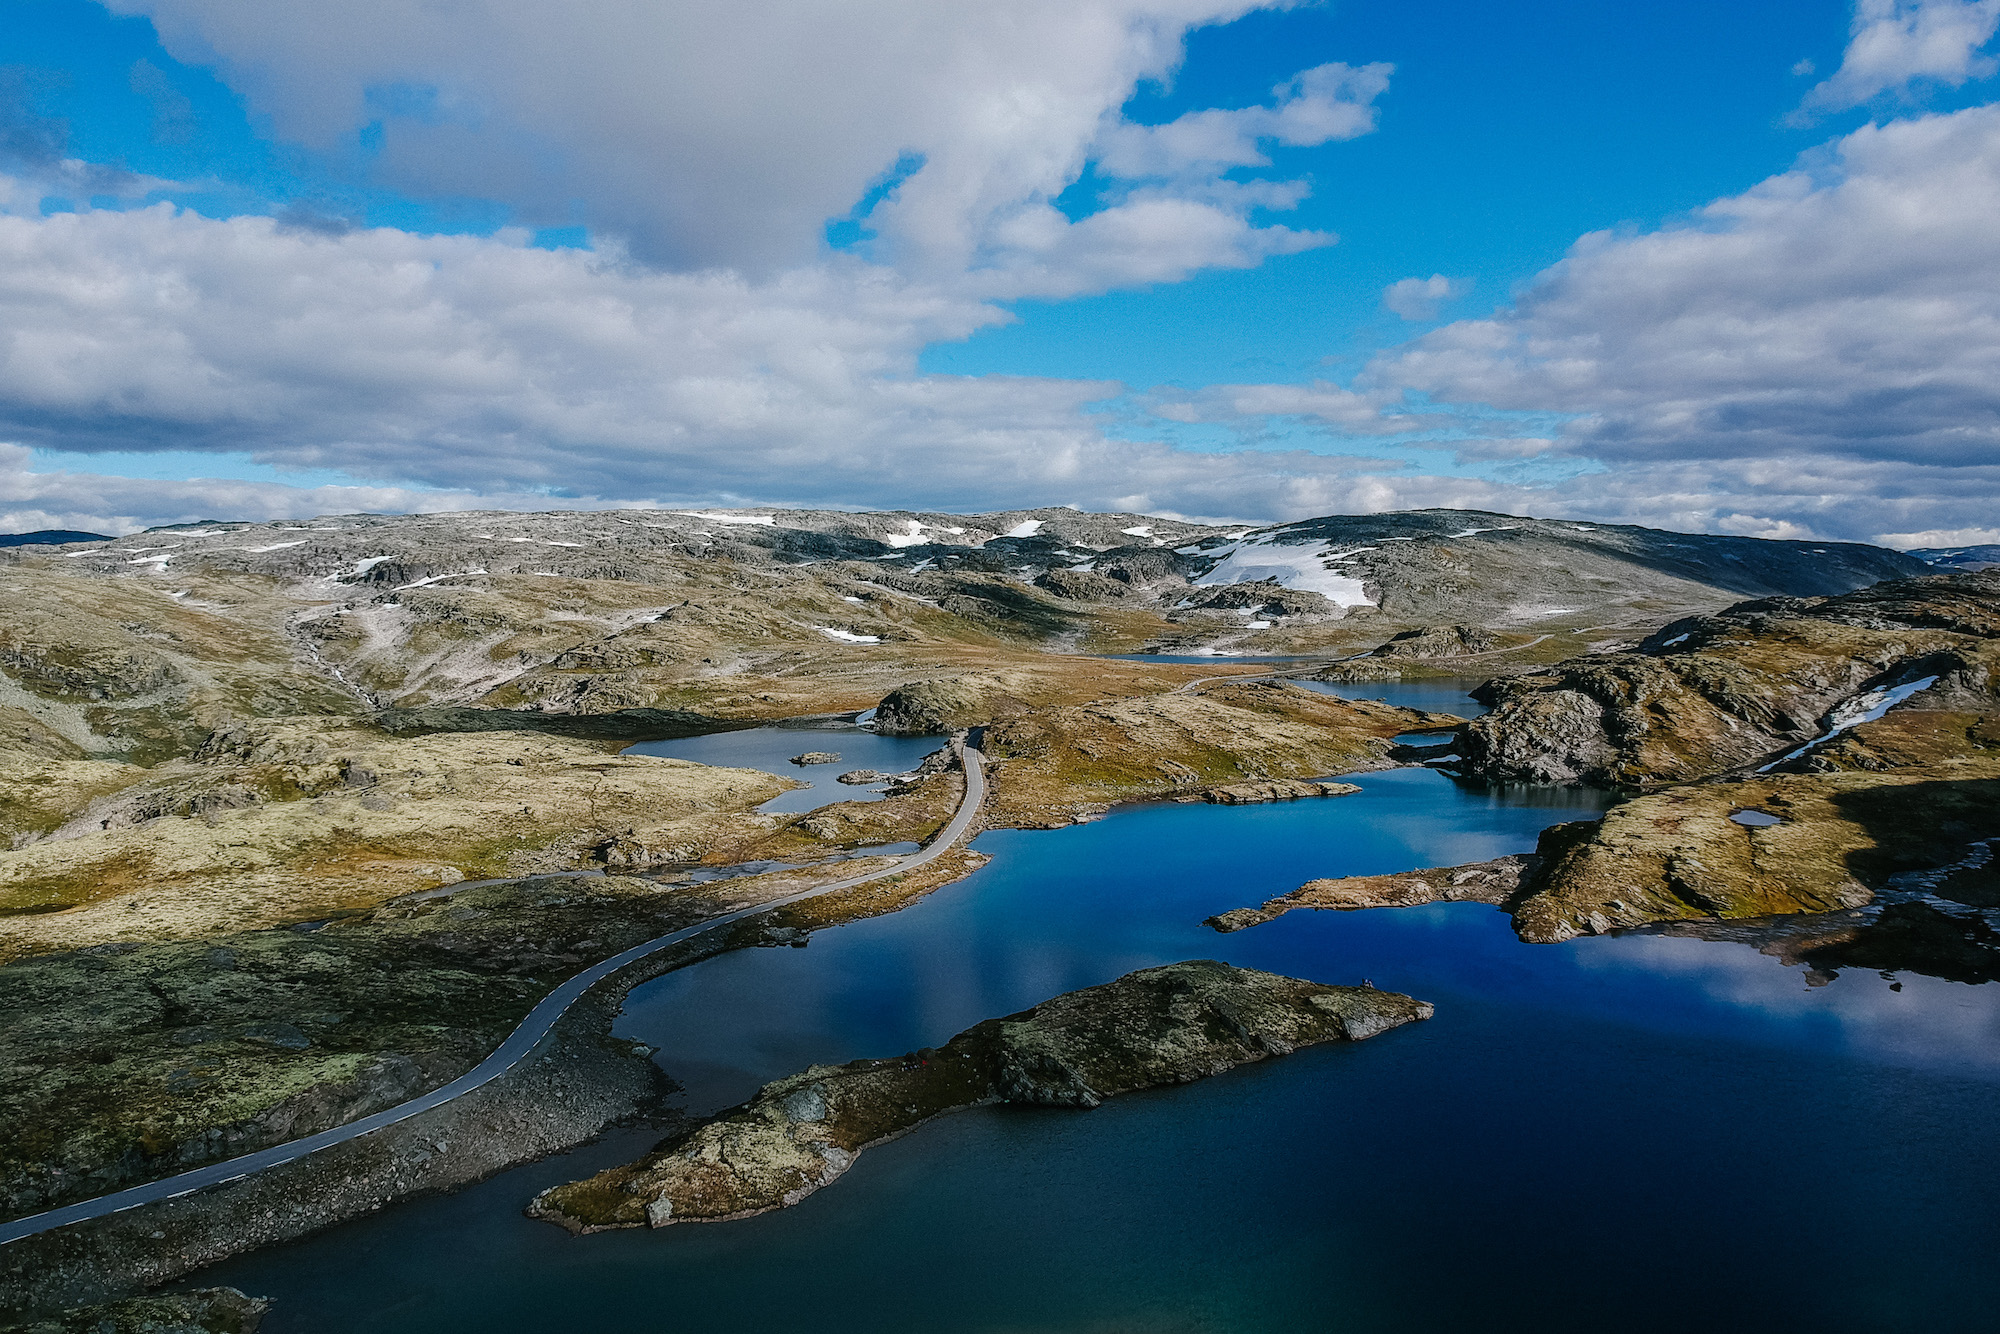 Bjørgavegen - We didn't really know what to expect, but this turned out to be one of the best roads I've ever driven along. With incredible scenes and a quite place to take a breather, you have to experience it.